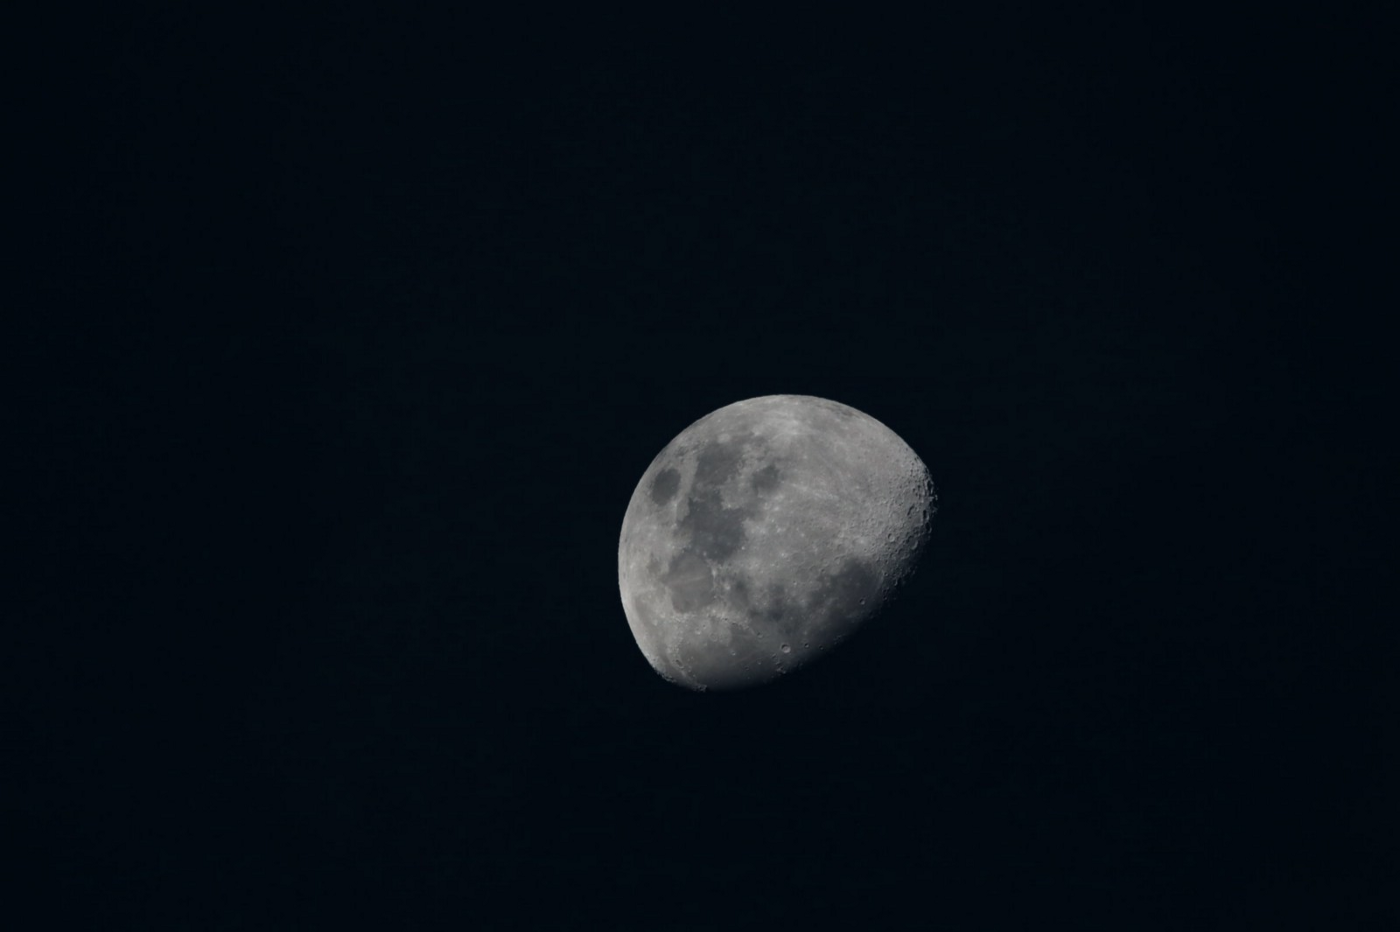 A solitary three quarter moon on a pitch black background in black and white.